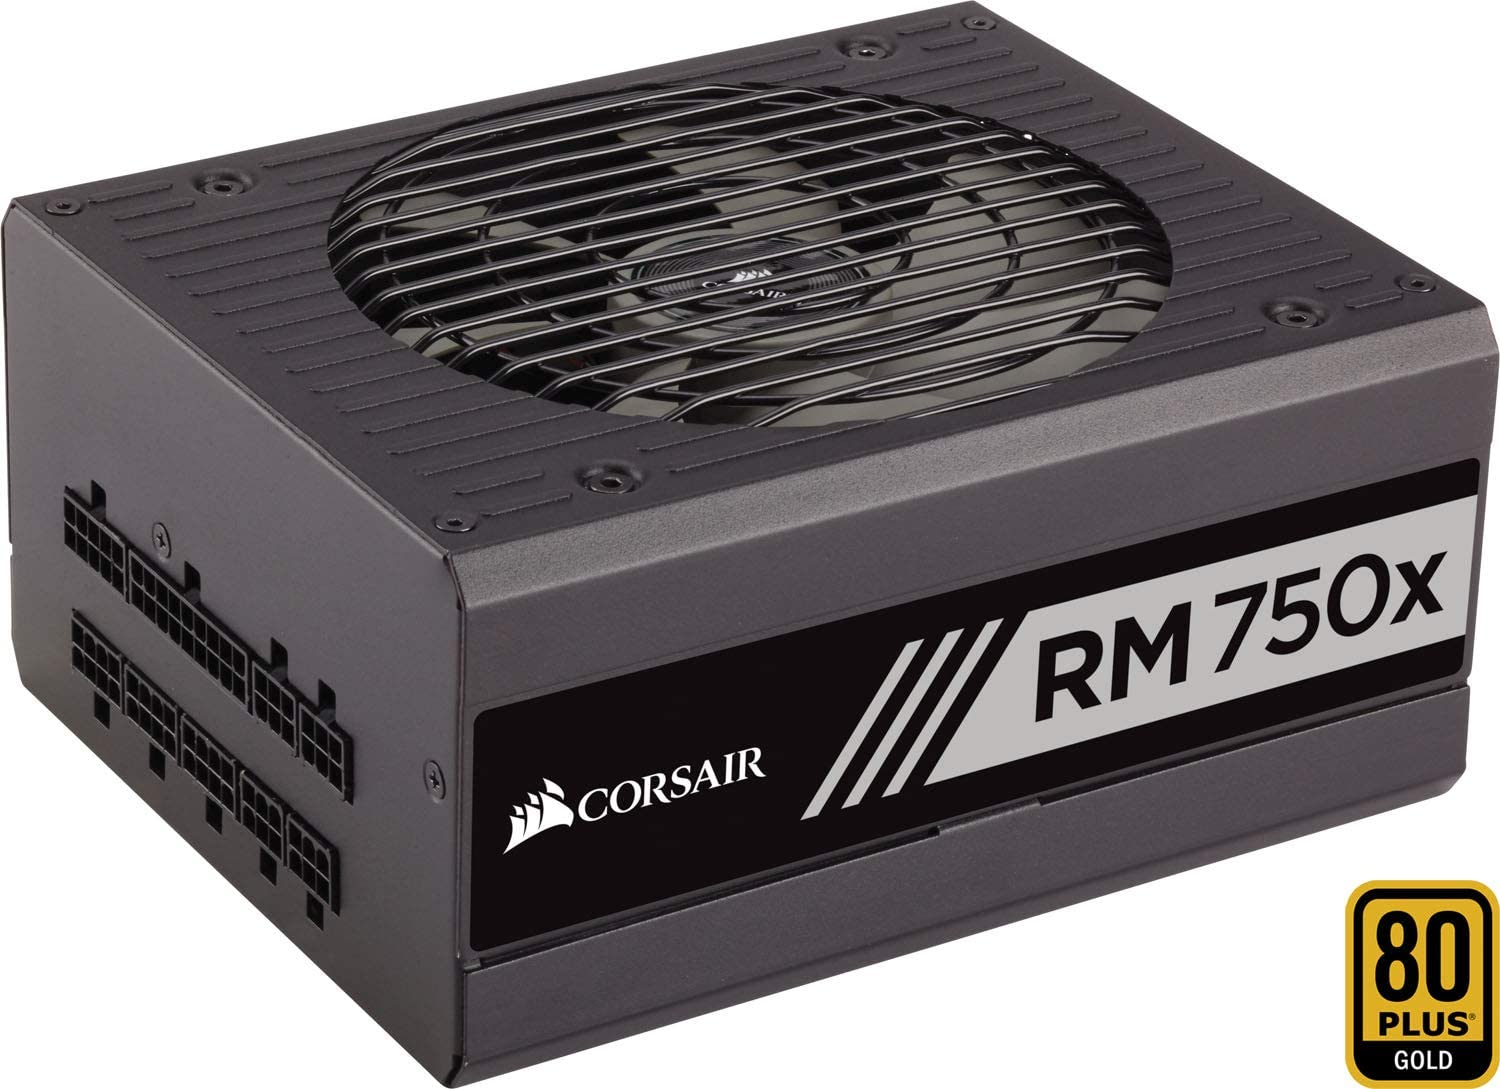 Corsair RM750x 80 Plus Gold Fully Modular ATX Power Supply, CP-9020179-EU (Modular ATX Power Supply)